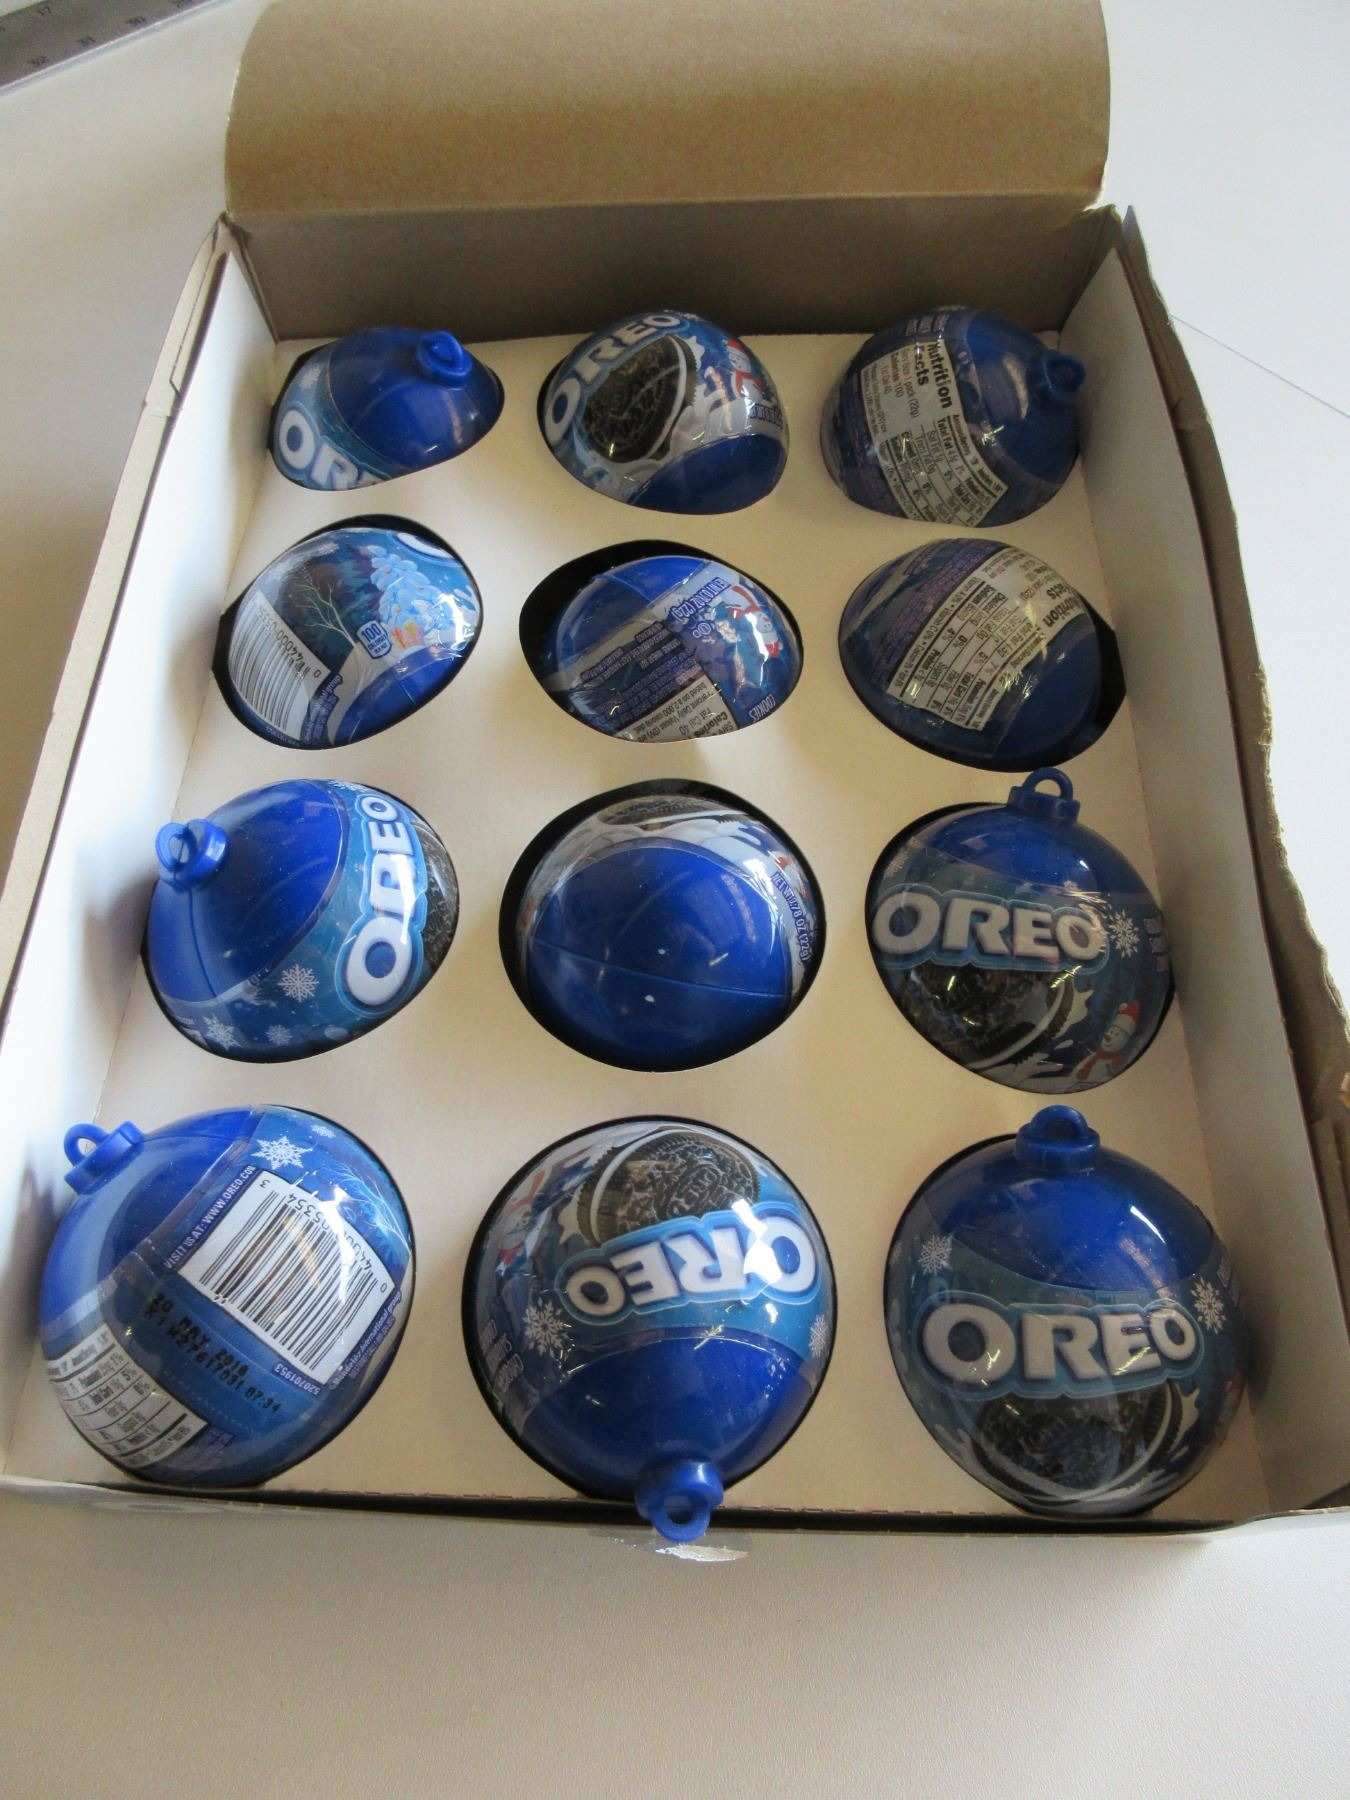 Box Of New Oreo Ornaments Tree Ornaments With Cookies Inside